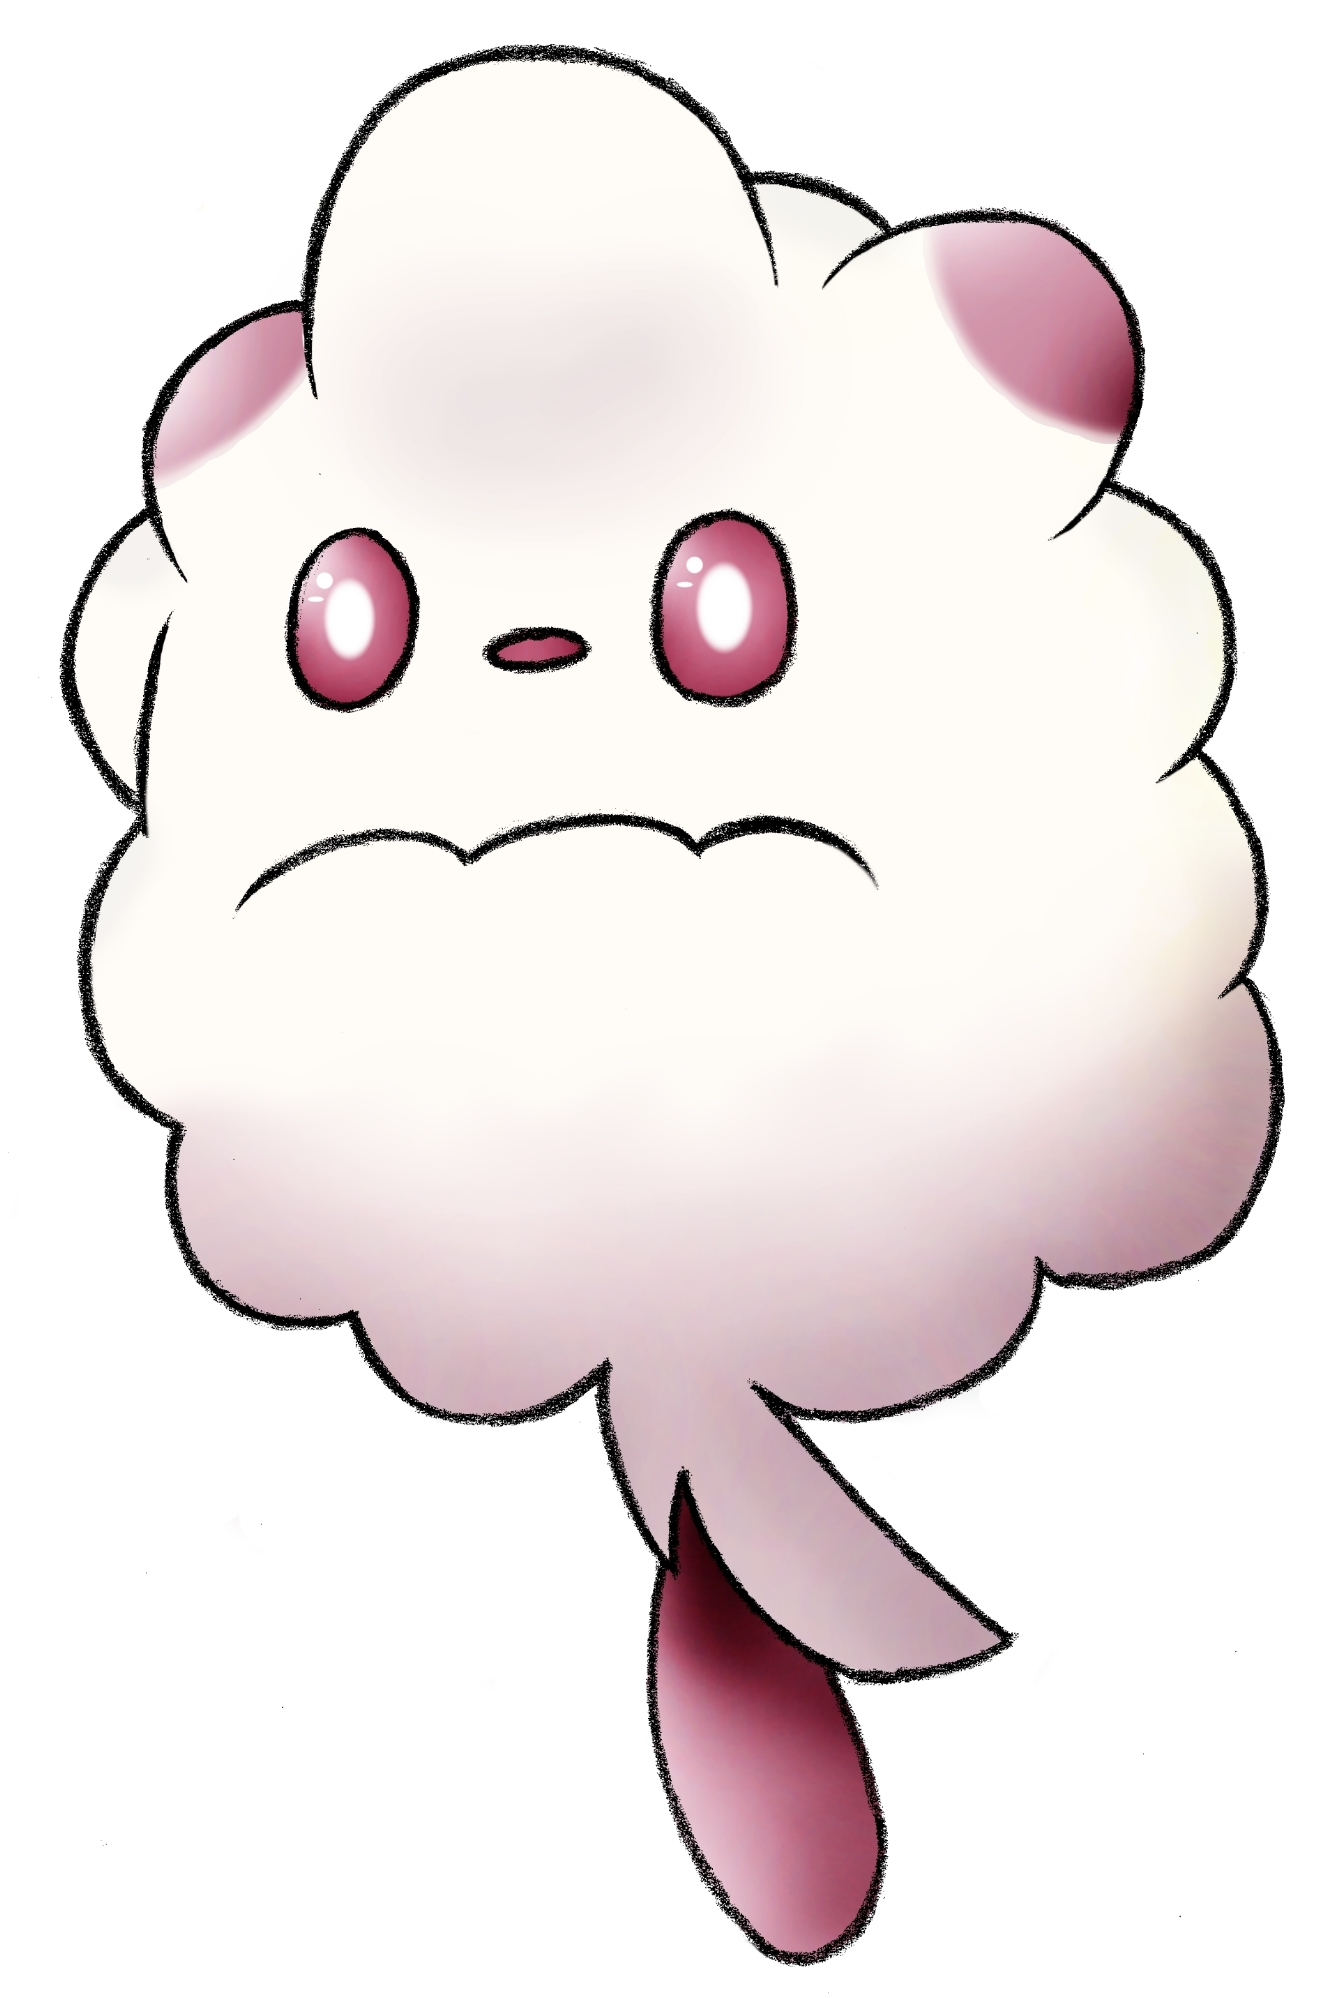 Pokémon-Zeichnung: Sad Flauschling is sad.